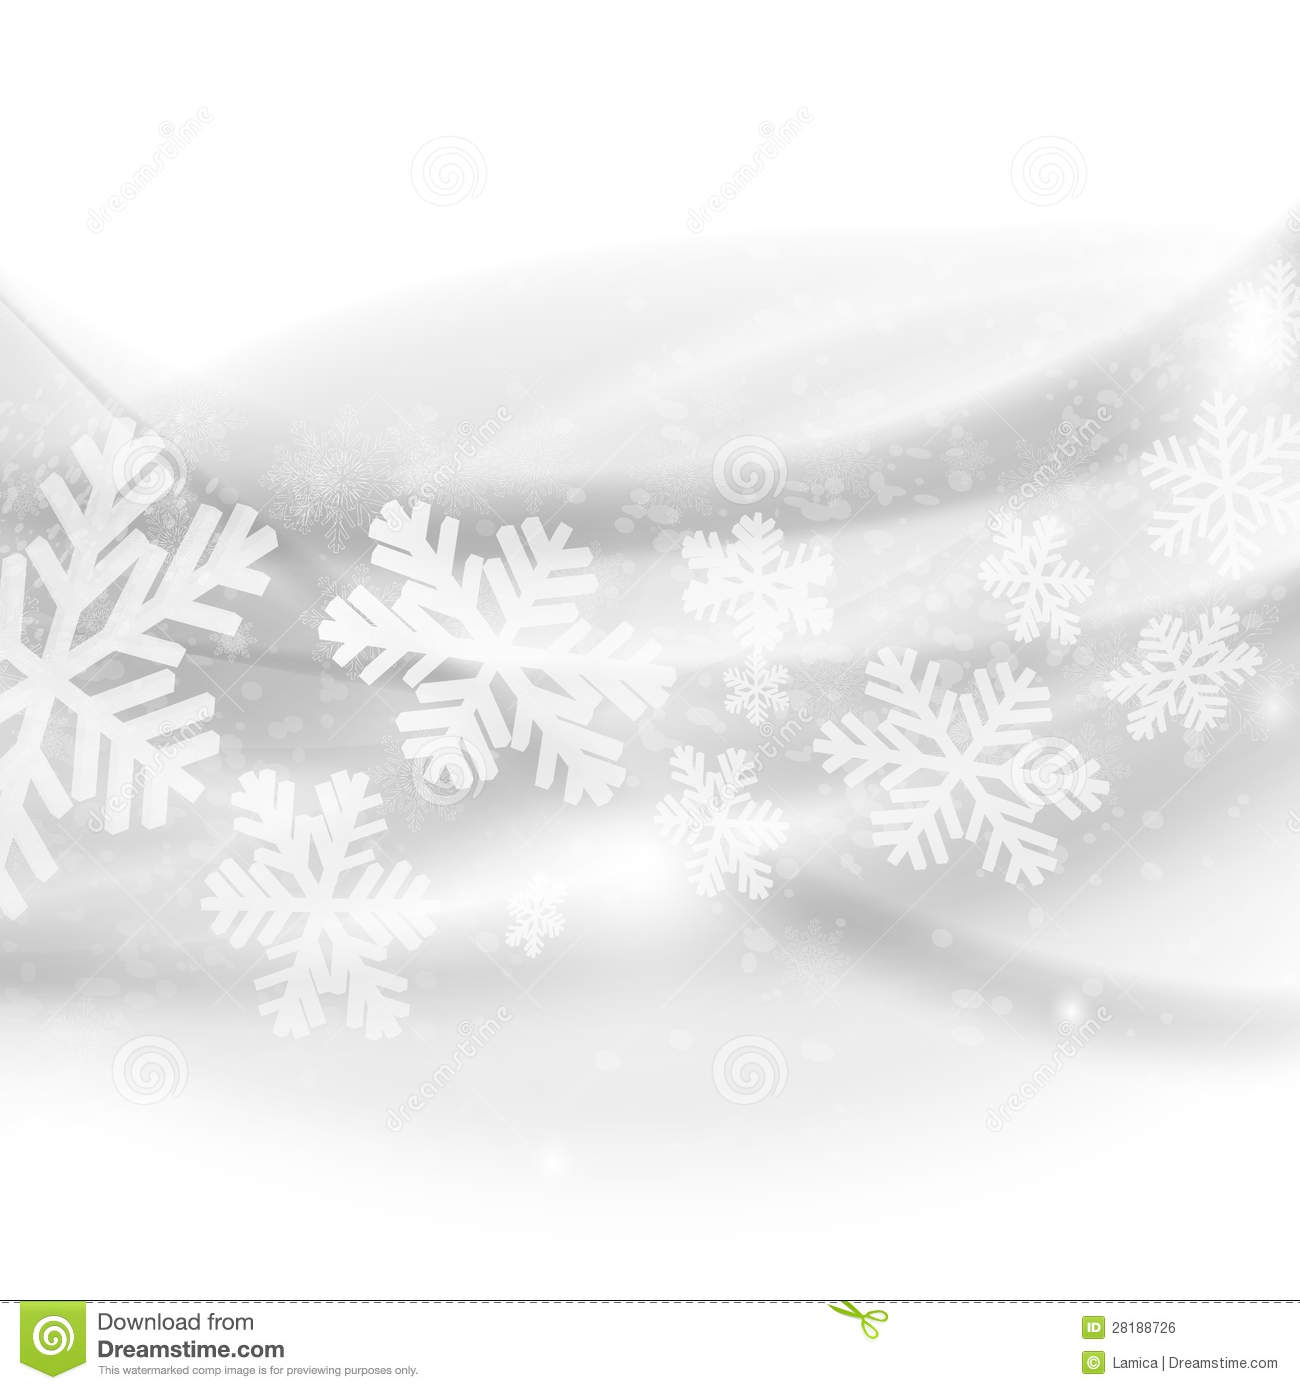 Merry Christmas background. Abstract light grey waves with snow